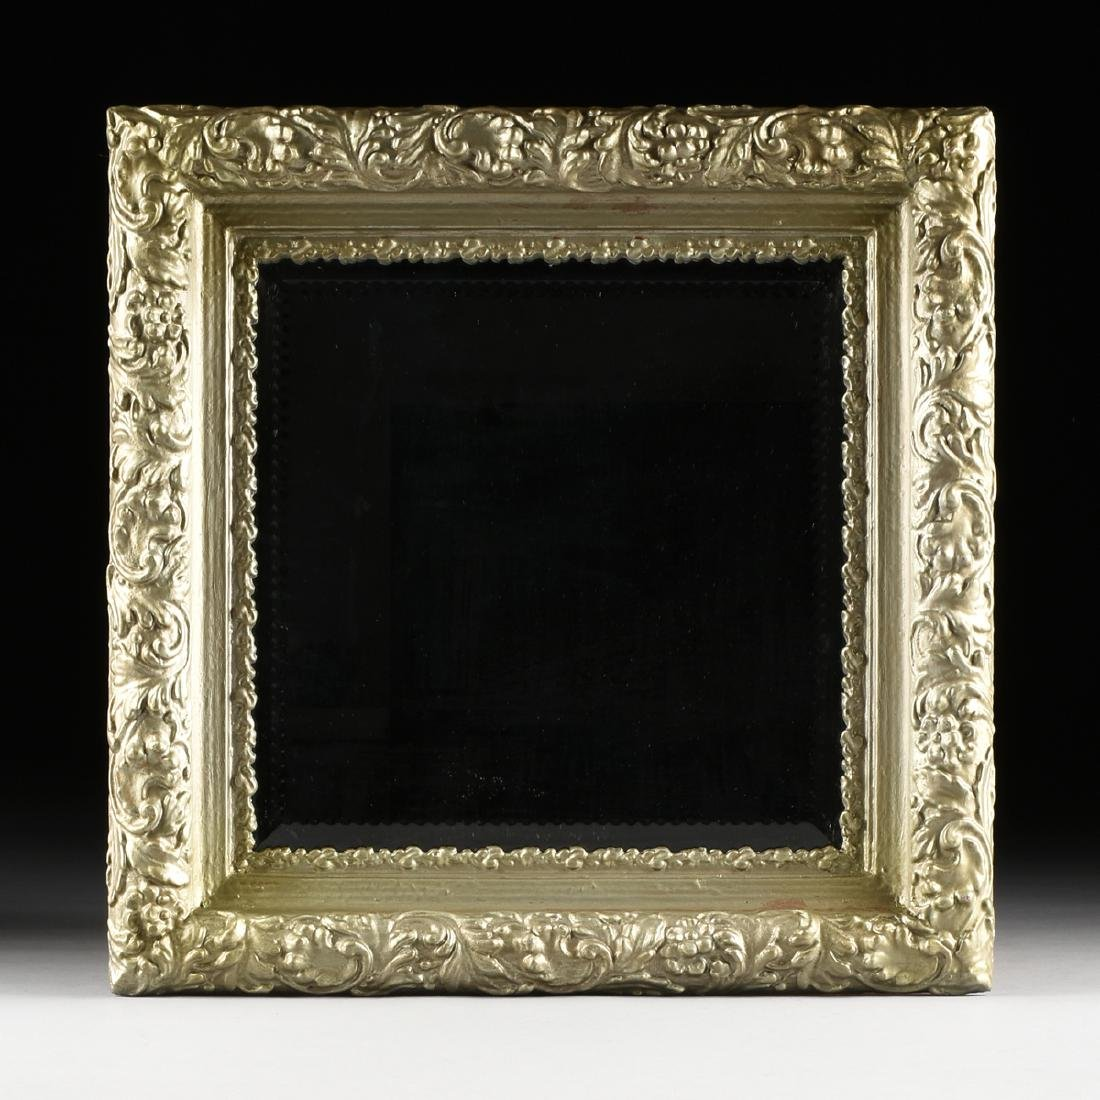 A LOUIS XVI STYLE SILVERED FRAME BEVELED MIRROR,